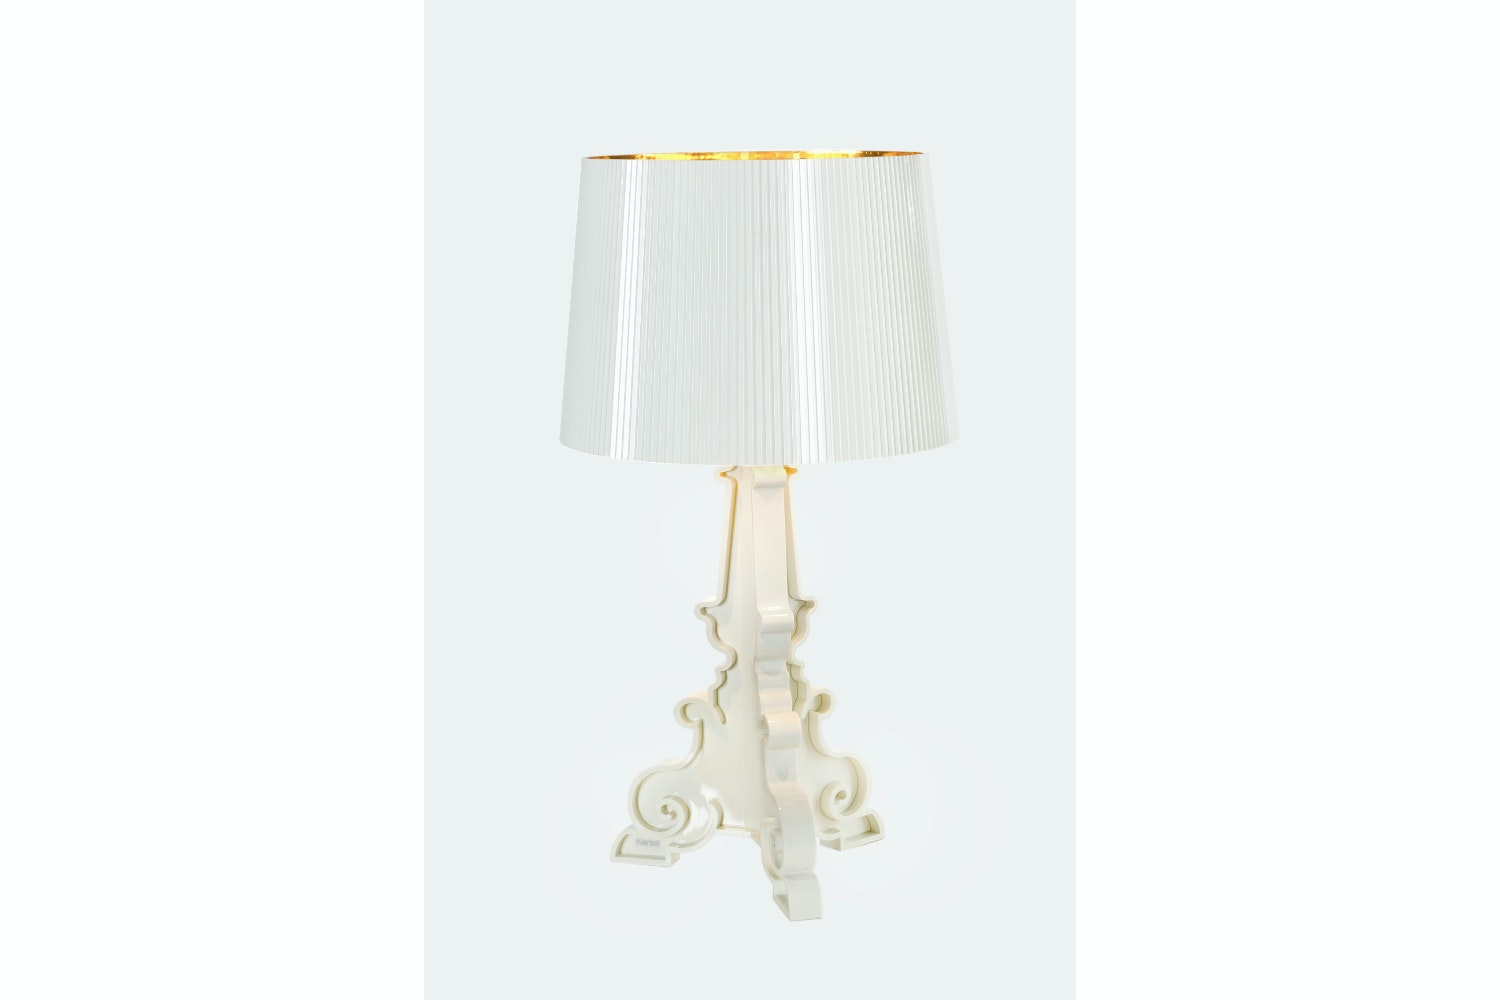 Bourgie White/Gold Table Lamp by Ferruccio Laviani for Kartell